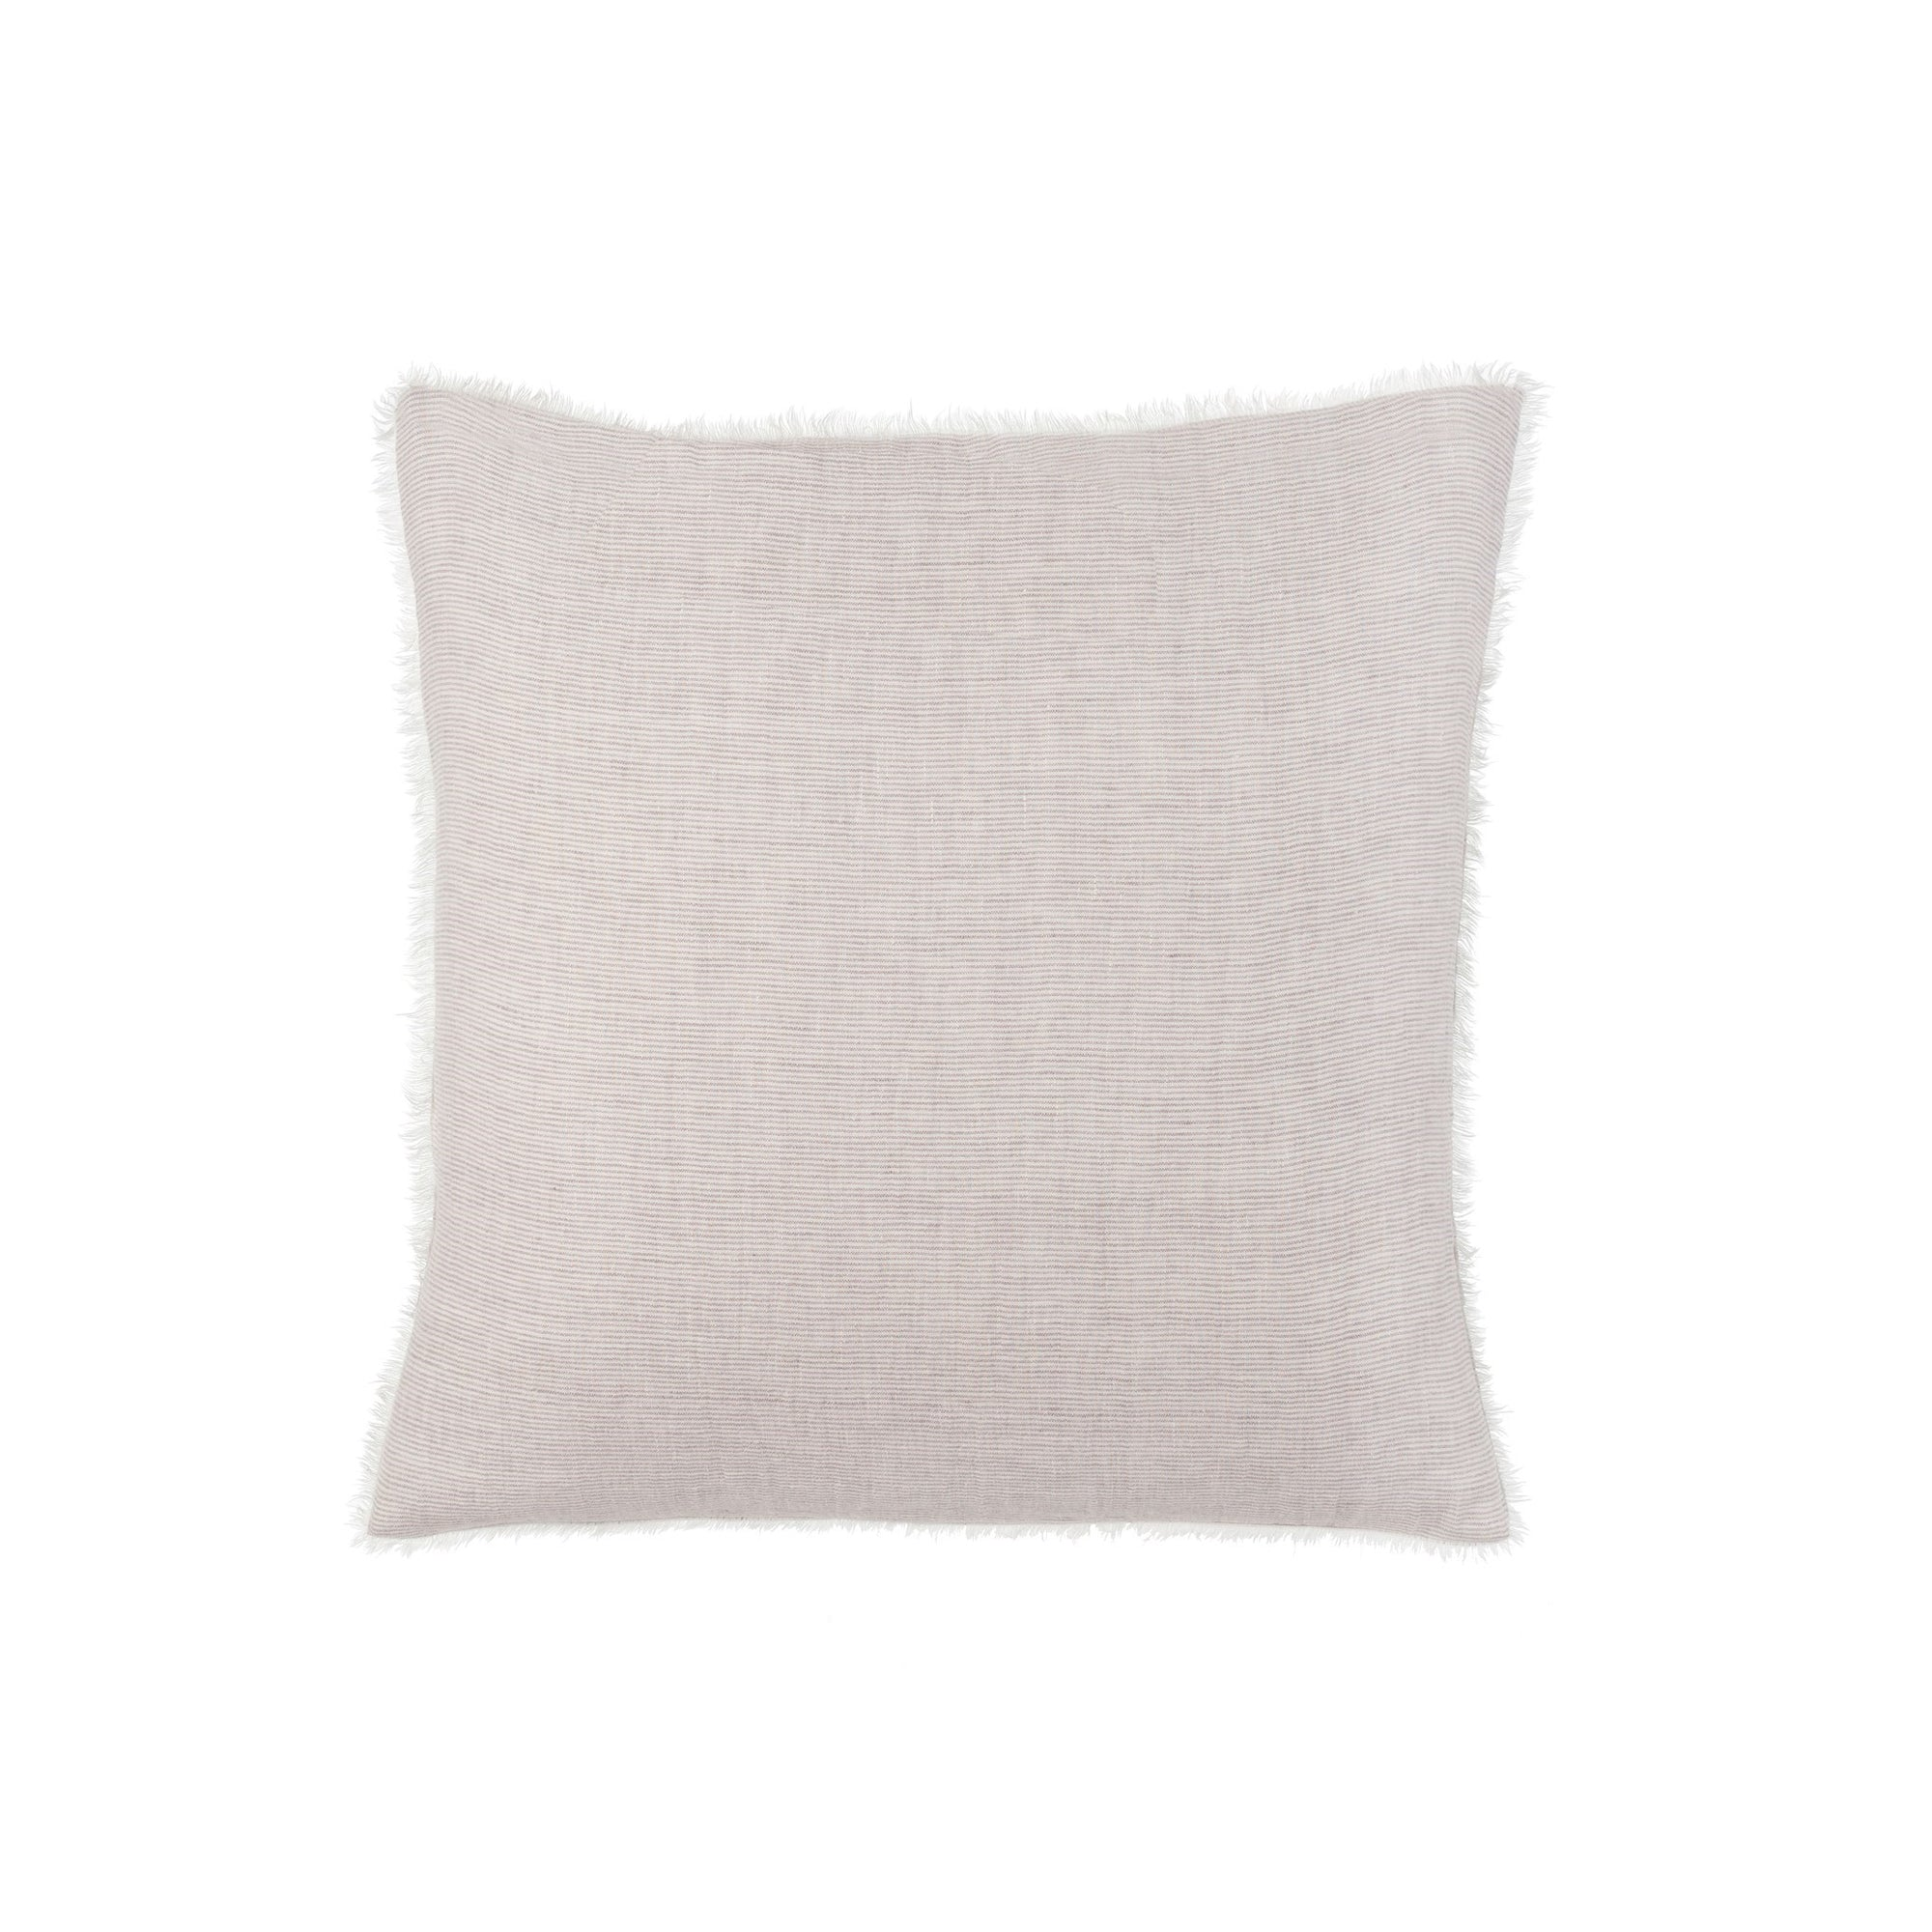 Lina Linen Pillow - Skye Natural Stripe | Putti Fine Furnishings Canada